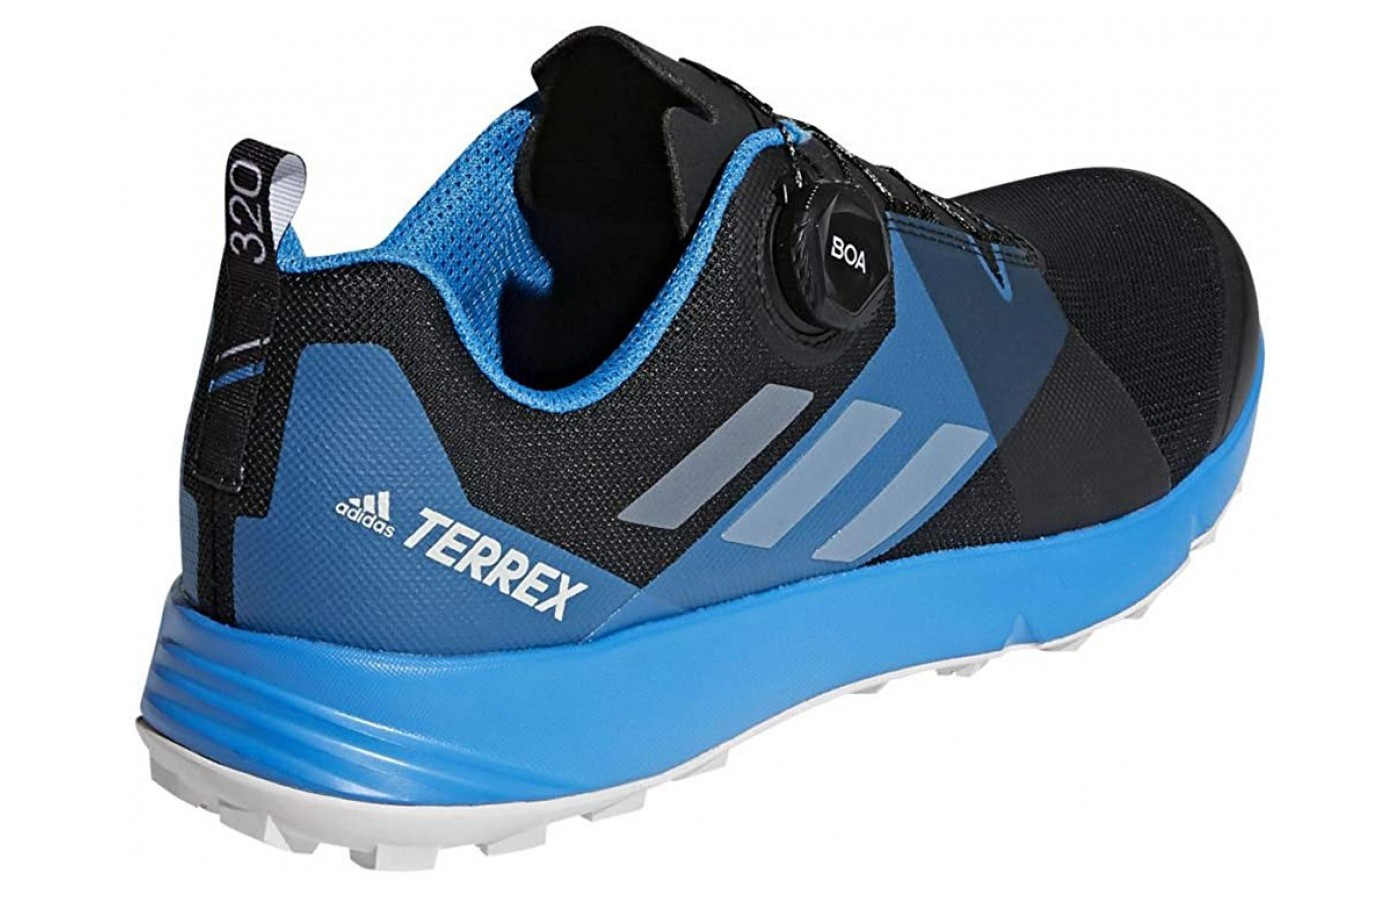 1ad124f23e5 Adidas Terrex Two Boa: To Buy or Not in 2019 | TheGearHunt